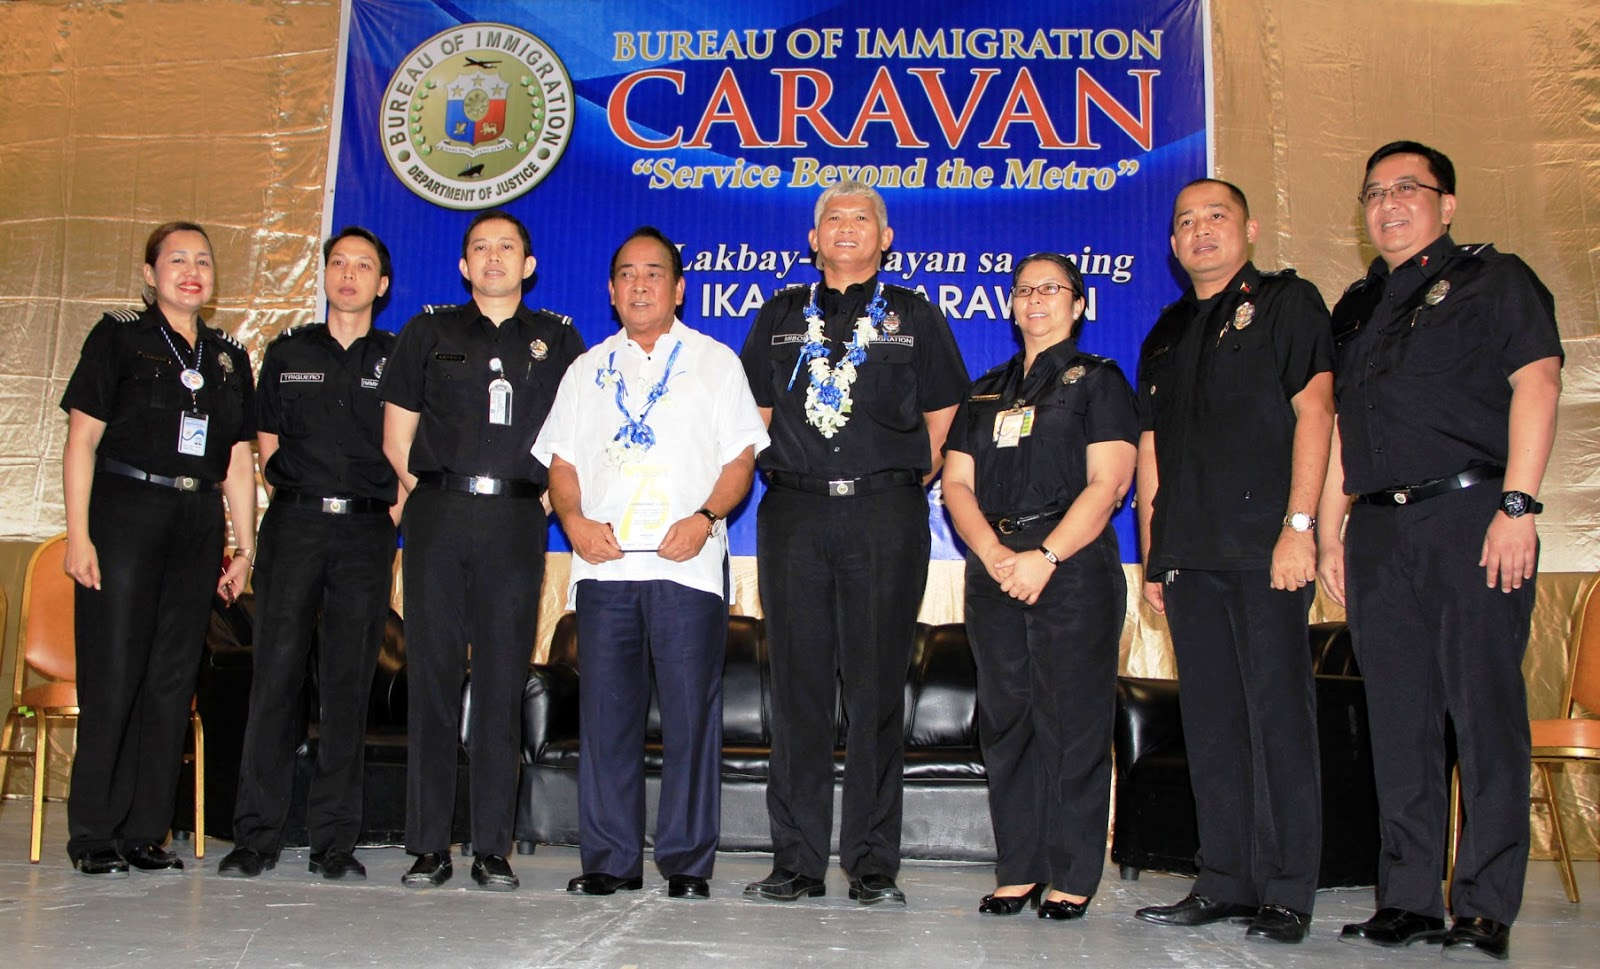 posts in 2015 subicnewslink the bi caravan aimed to make available immigration services and transactions for foreigners in the areas of zambales and the subic bay port zone